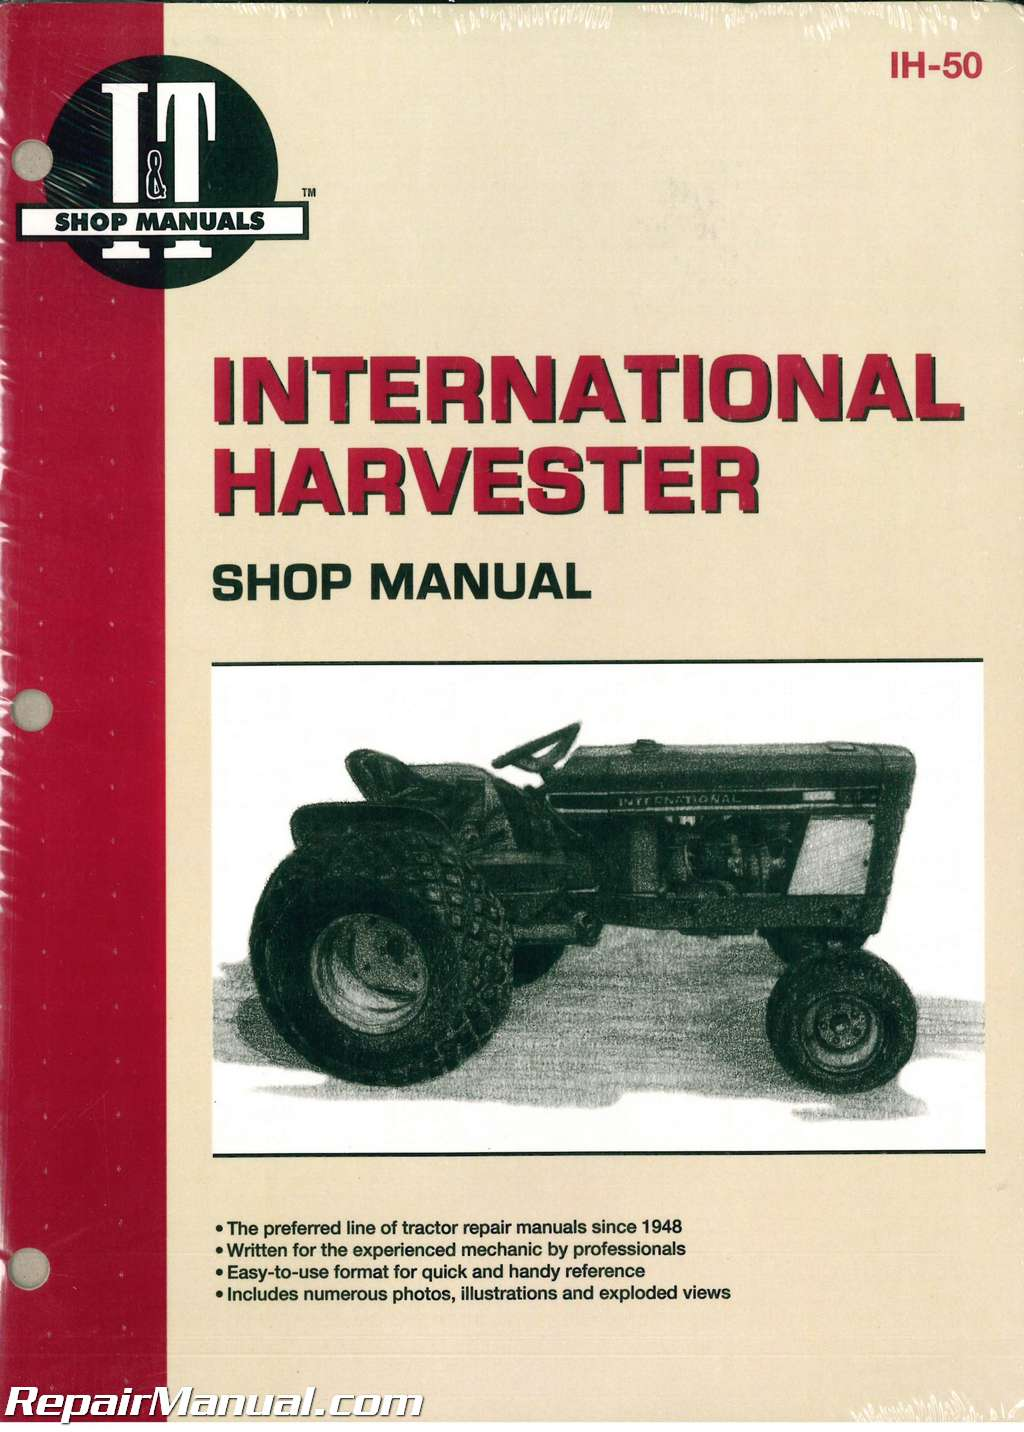 international harvester cub 154 184 185 lo boy farmall cub tractor rh repairmanual com Farmall Cub Accessories Farmall Cub Accessories